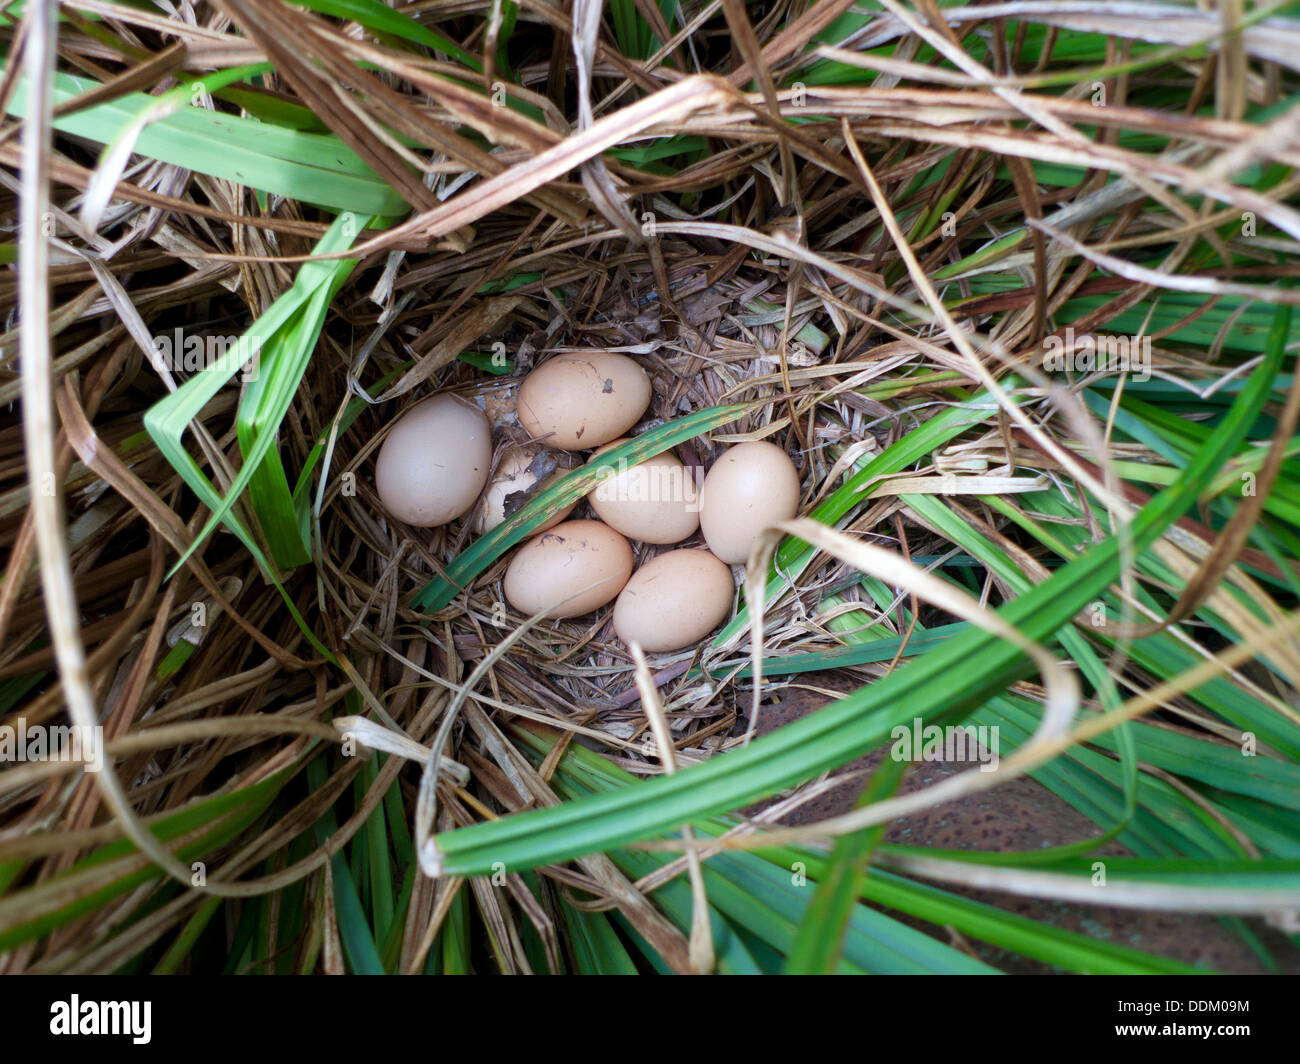 A clutch of eggs laid by a free ranging chicken in ornamental grass outside the hen house Carmarthenshire Wales UK  KATHY DEWITT - Stock Image